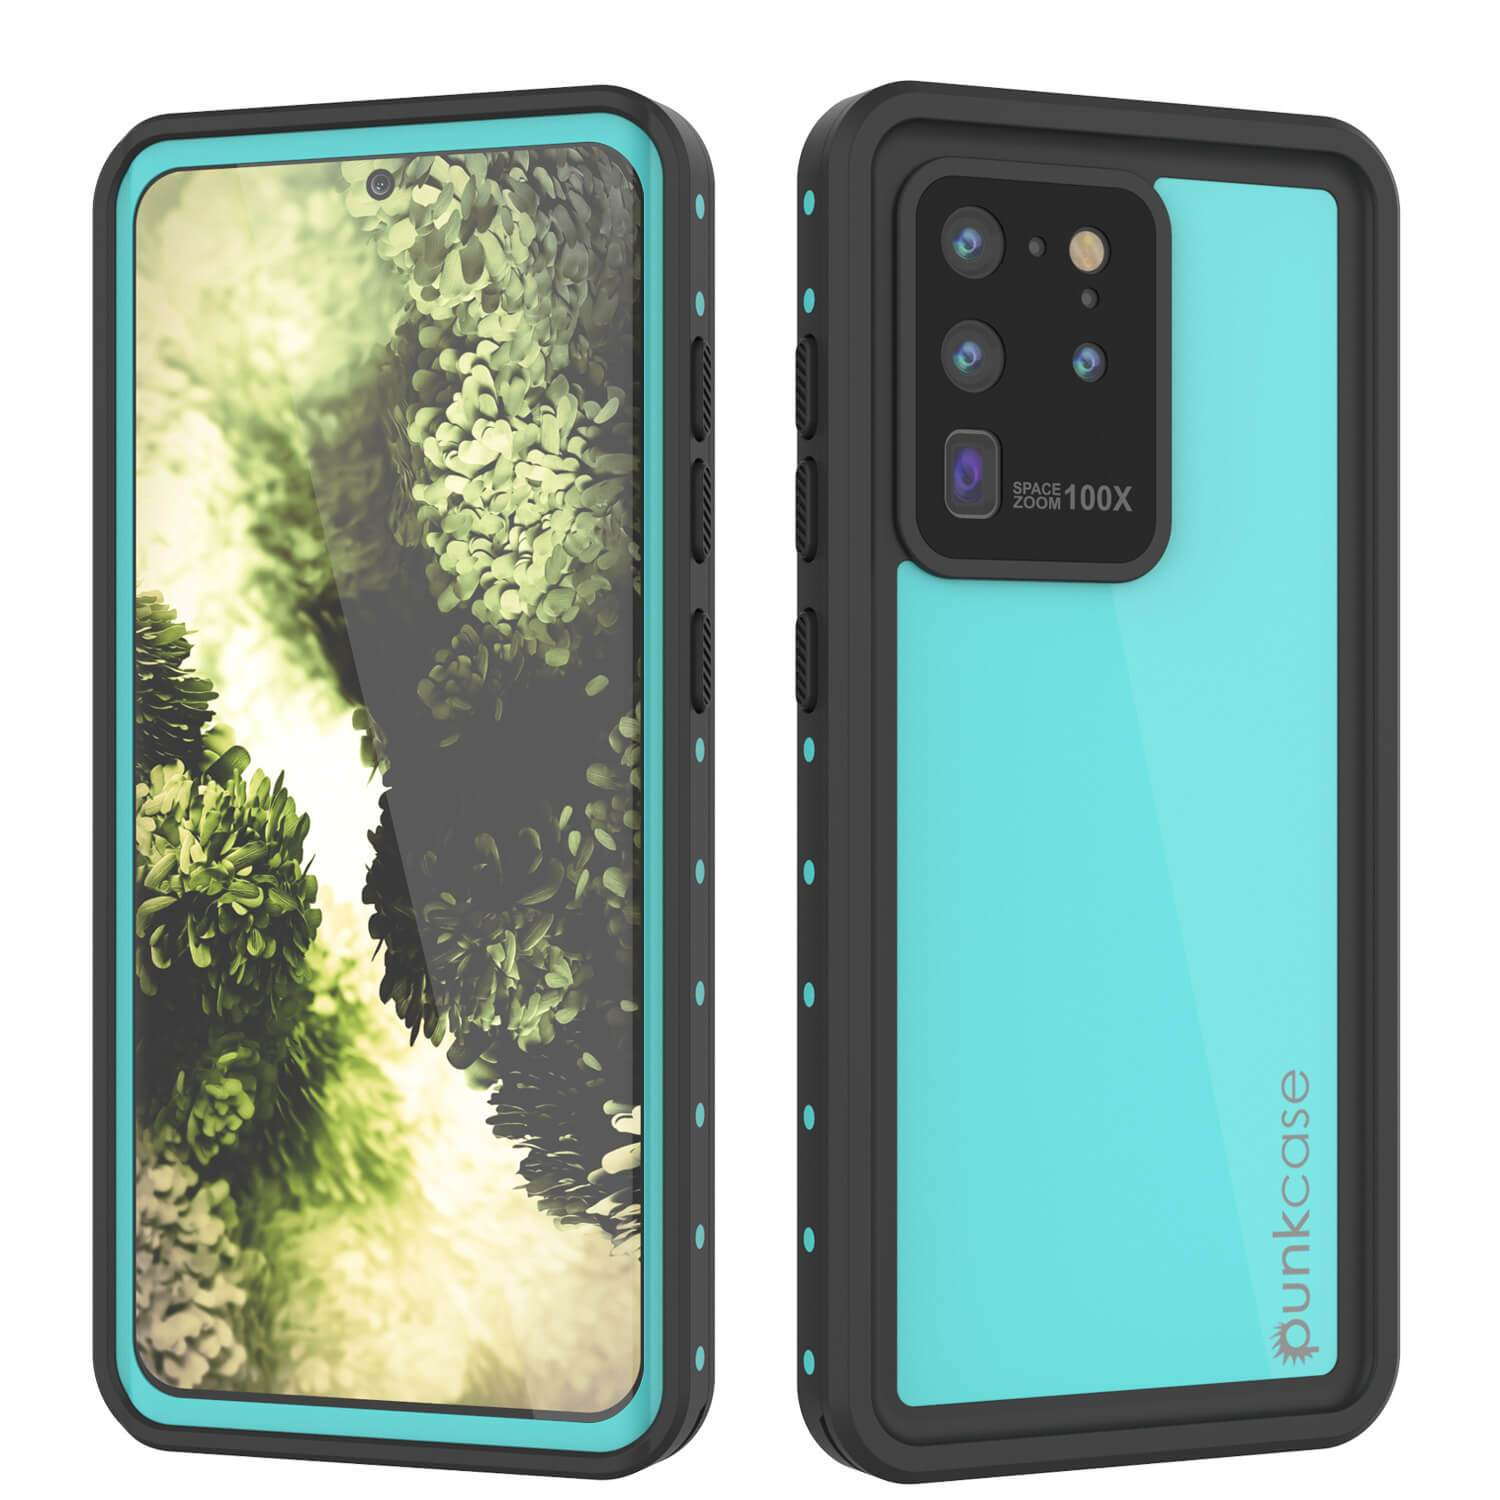 Galaxy S20 Ultra Waterproof Case PunkCase StudStar Teal Thin 6.6ft Underwater IP68 Shock/Snow Proof